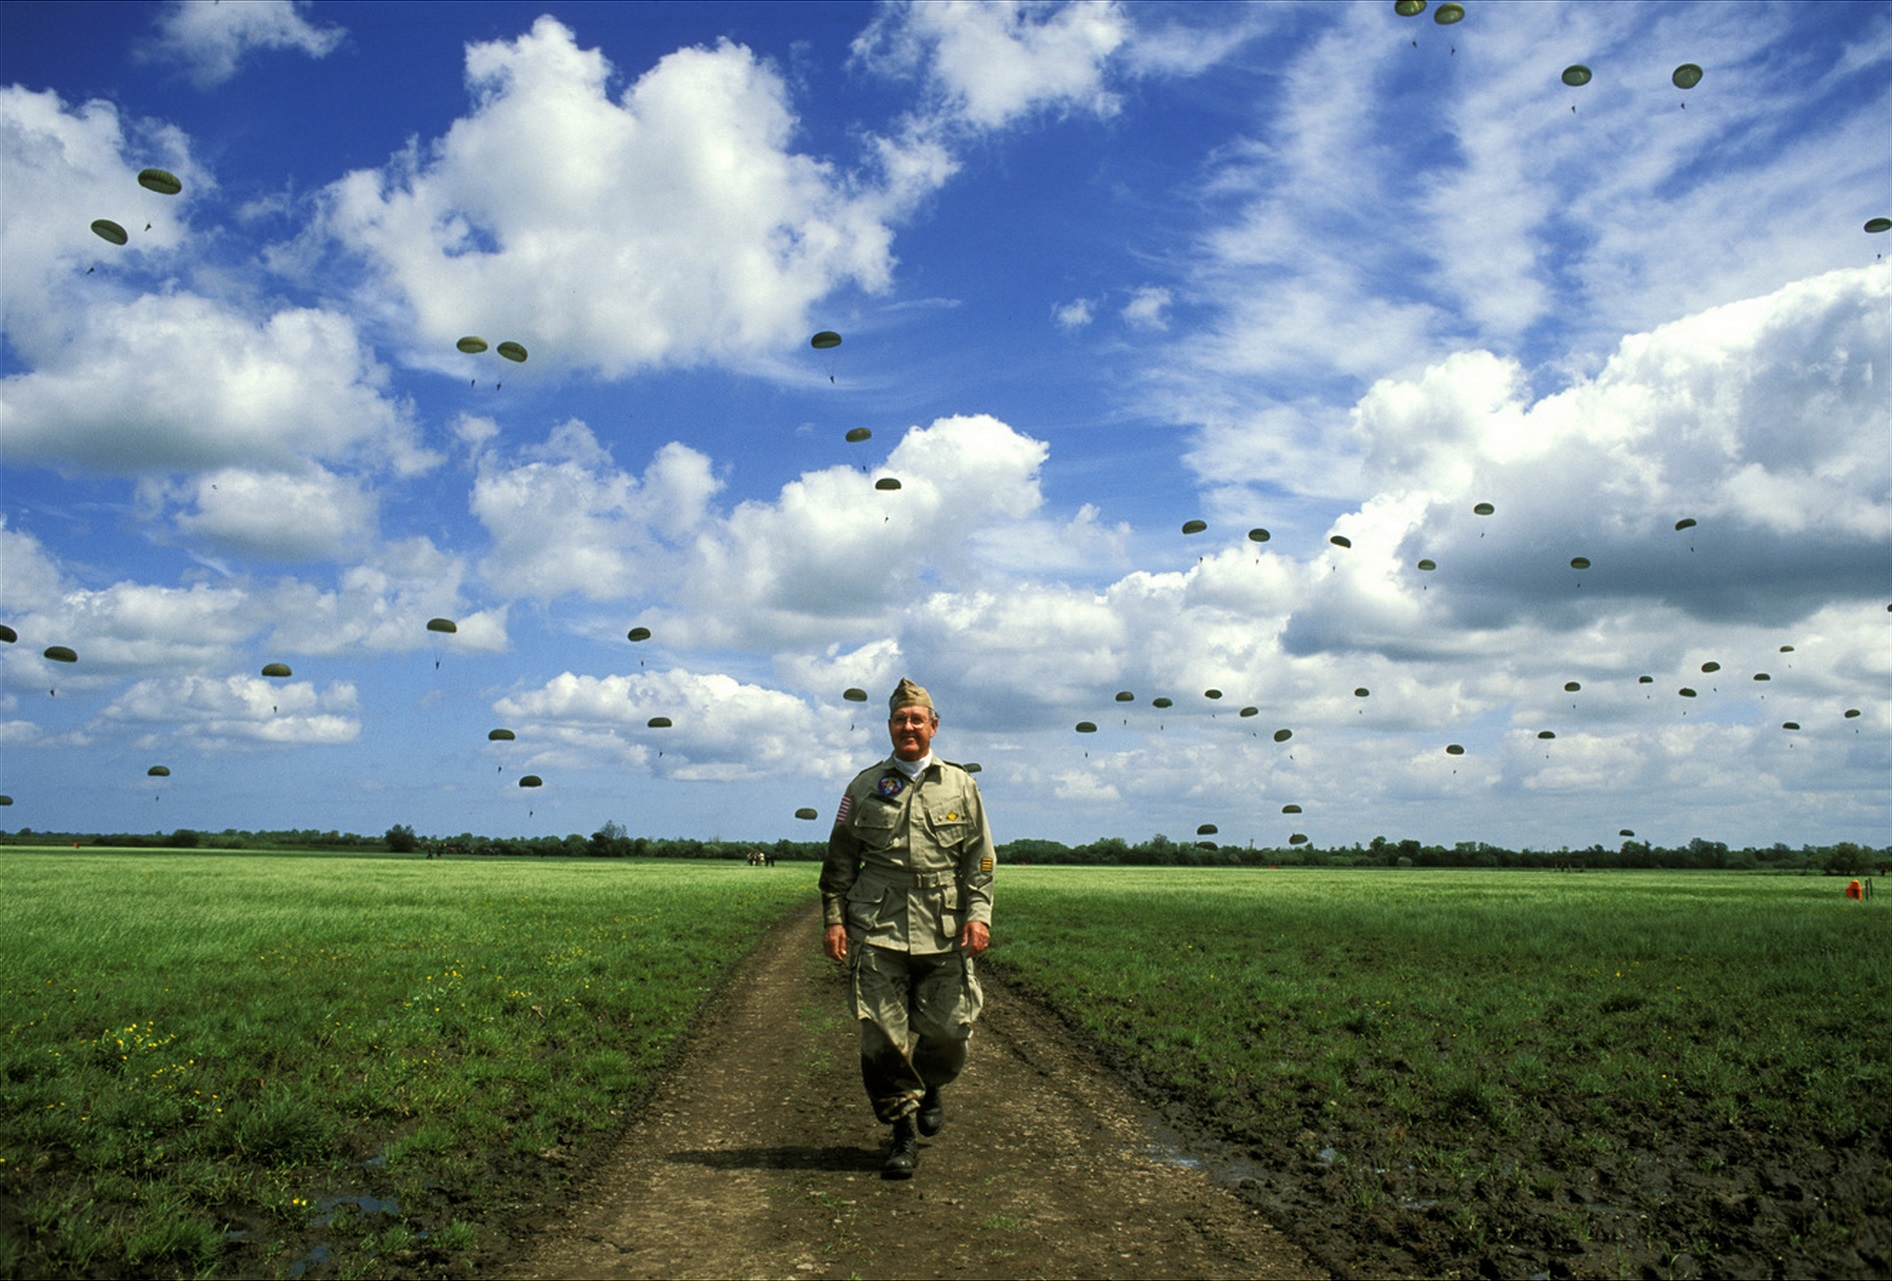 In 1994, on occasion of the 50th anniversary of D Day, Robert L Williams, 101st Airborne trooper, jumped with a bunch of former vets at Ste Mere Eglise. The sky behind is filled with chutes of active duty troops who jumped just after the vets did. © 2015 David Burnett/Contact Press Images